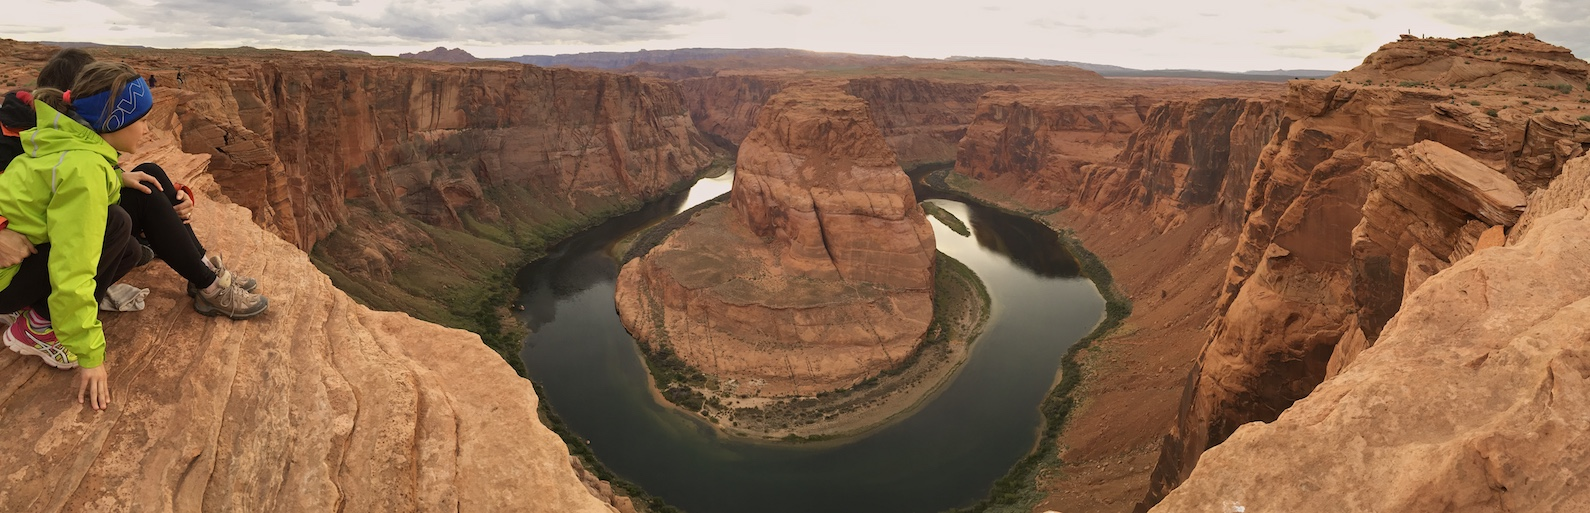 Horseshoe_Bend_043